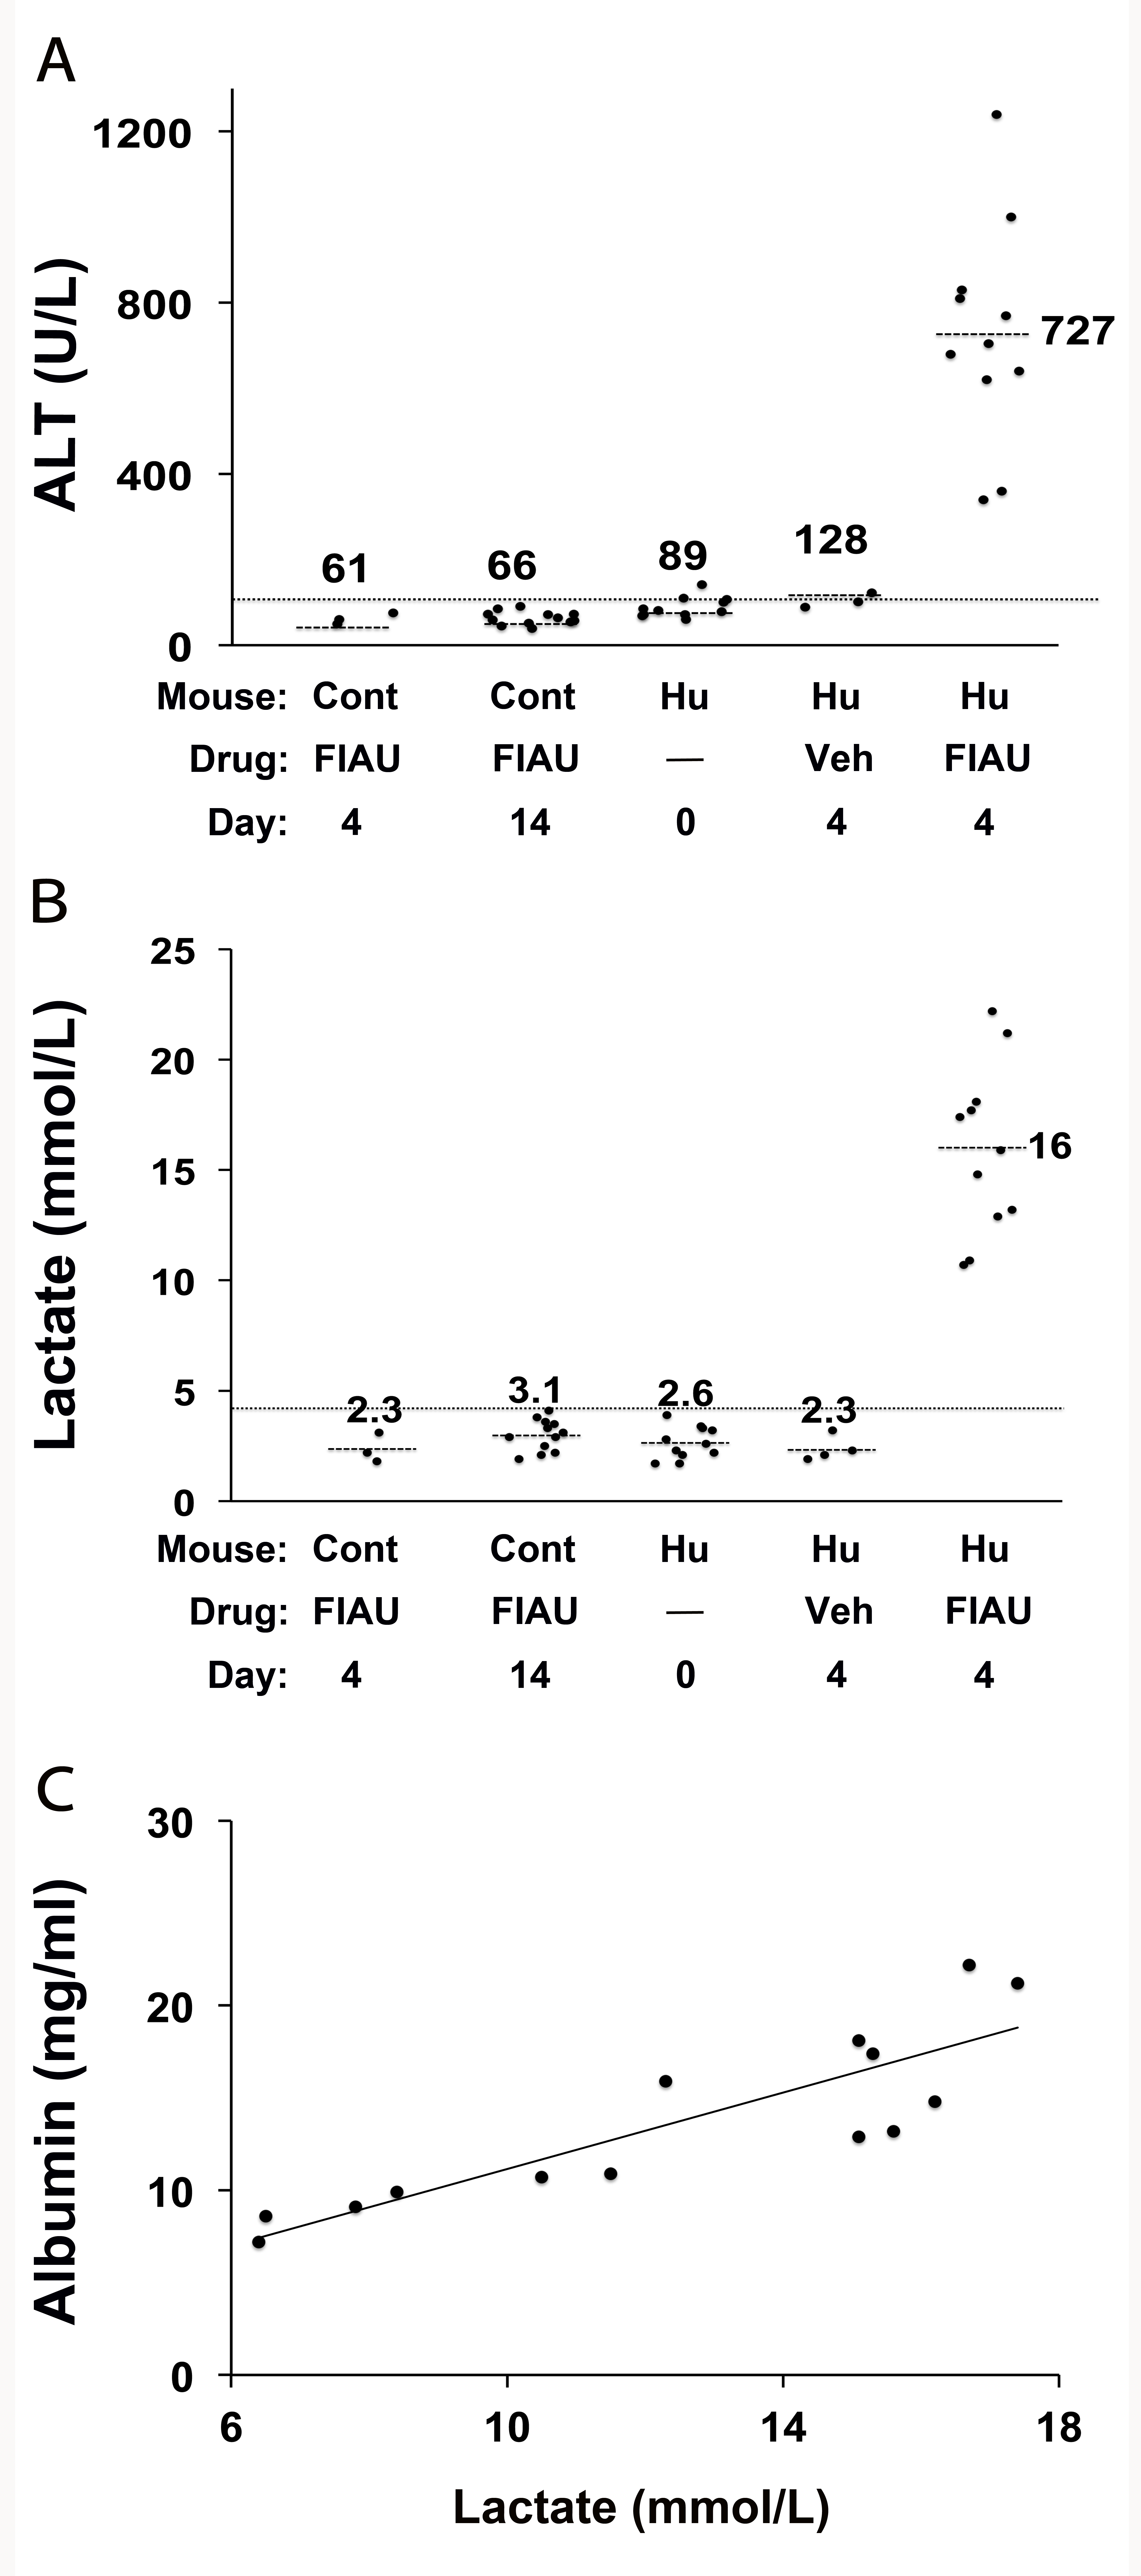 FIAU-induced liver toxicity develops in TK-NOG mice with humanized livers.